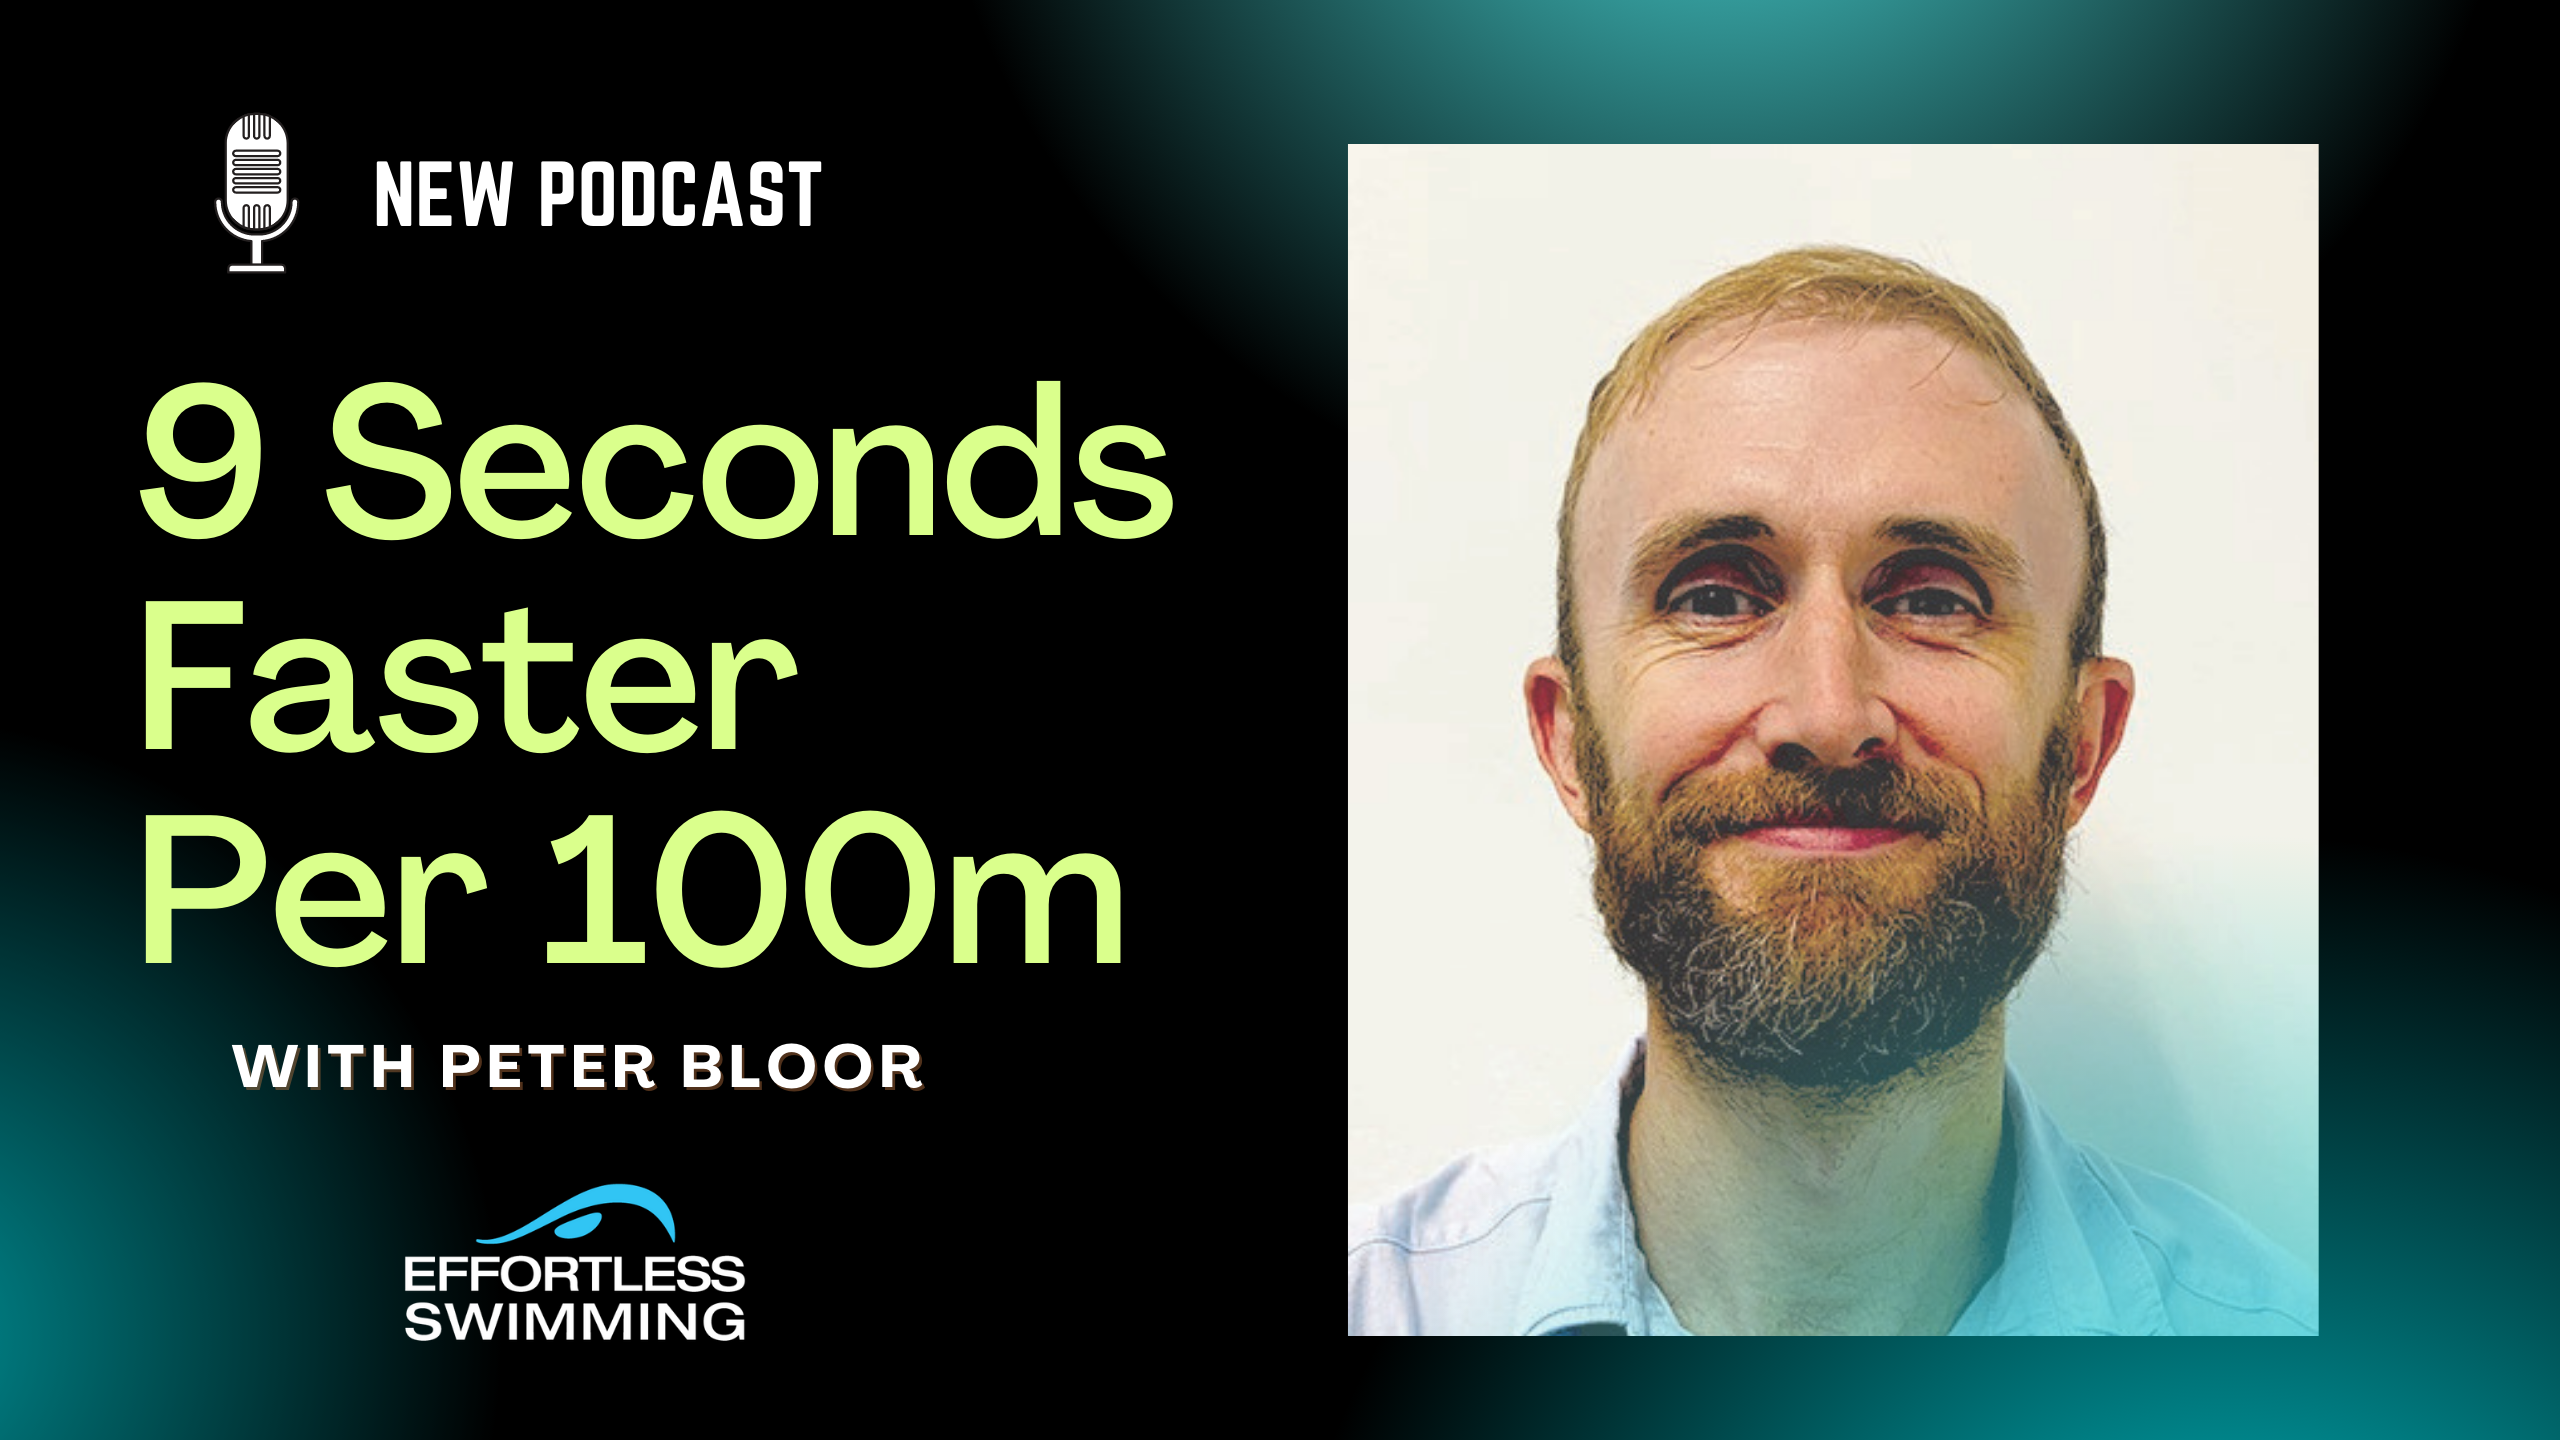 9 Seconds Faster Per 100m with Peter Bloor